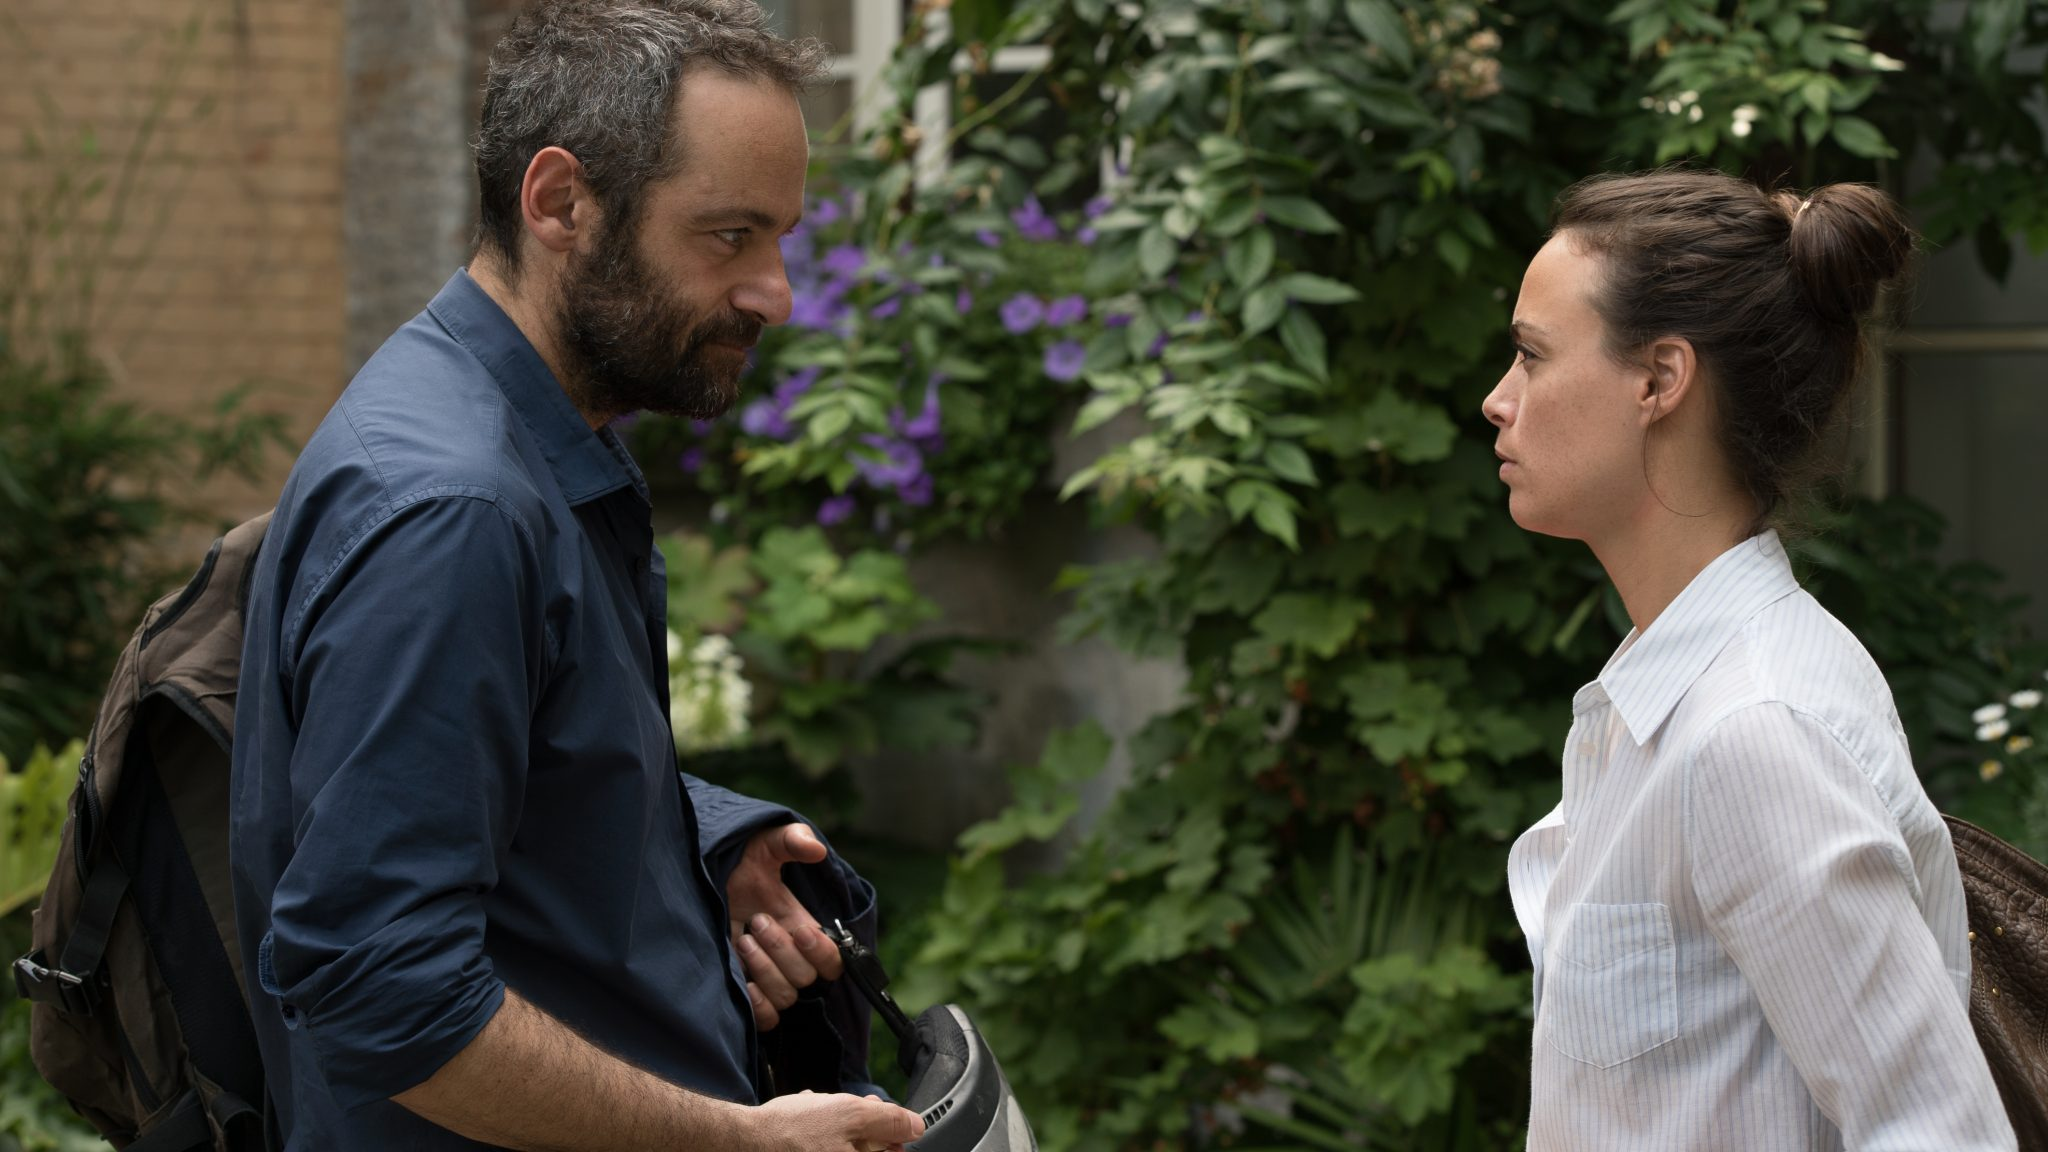 'After Love' masterfully walks the tightrope between love and hate